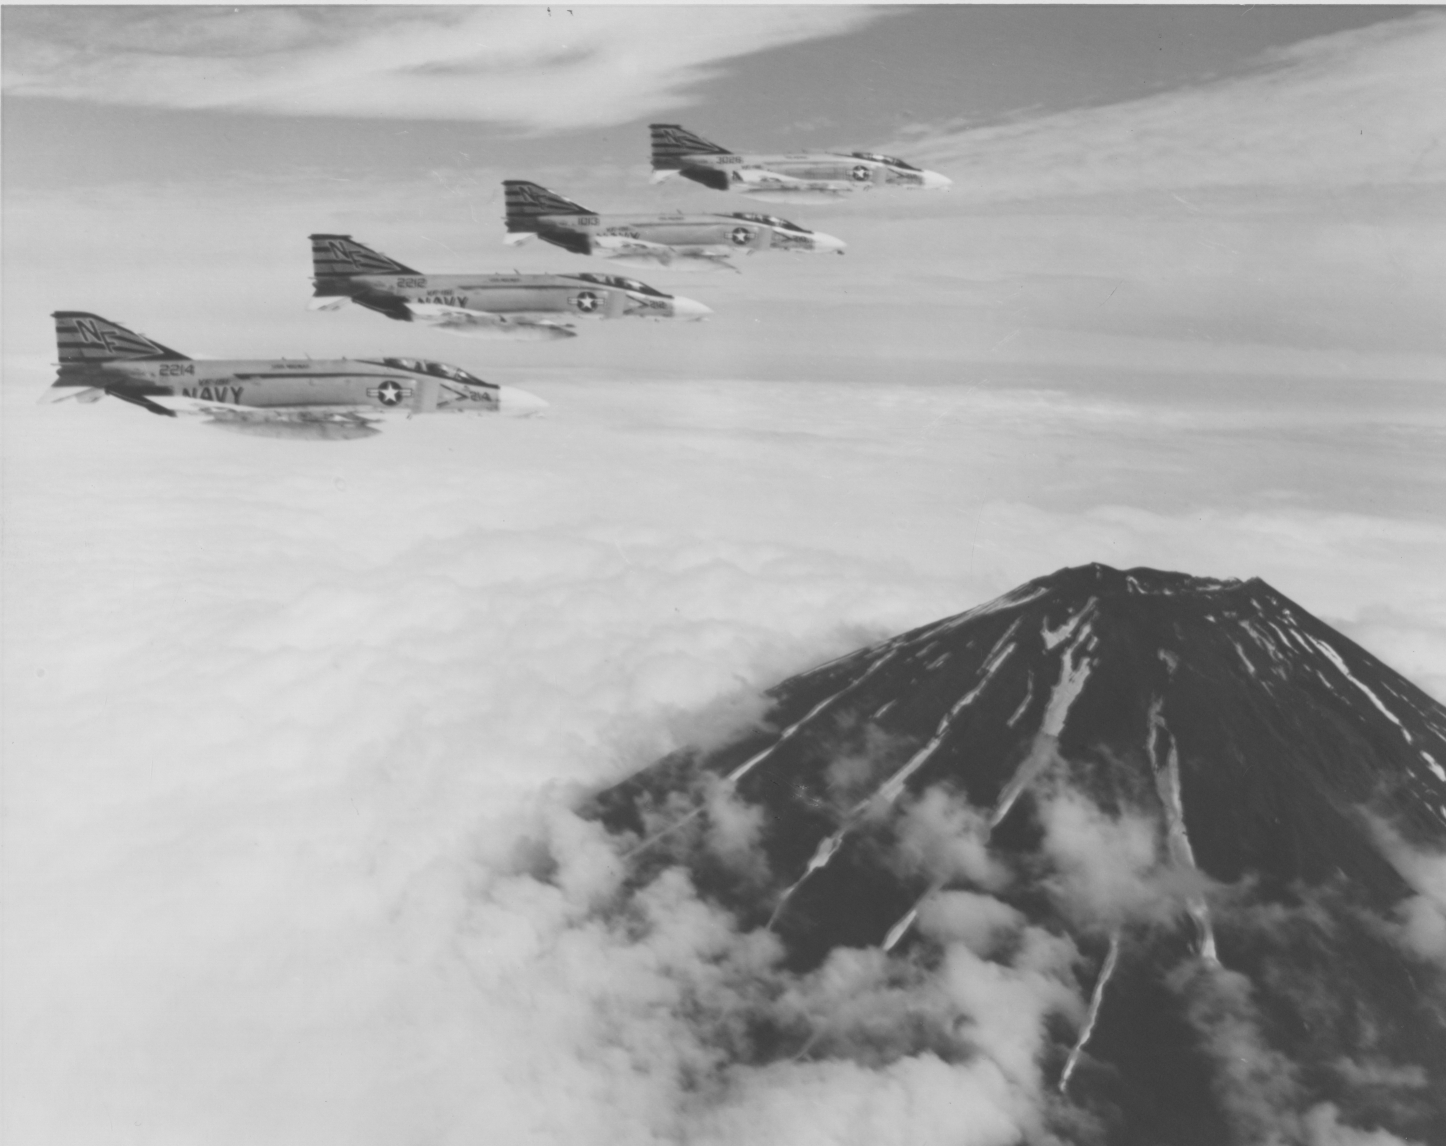 Four Navy F-4 Phantoms over a volcano.